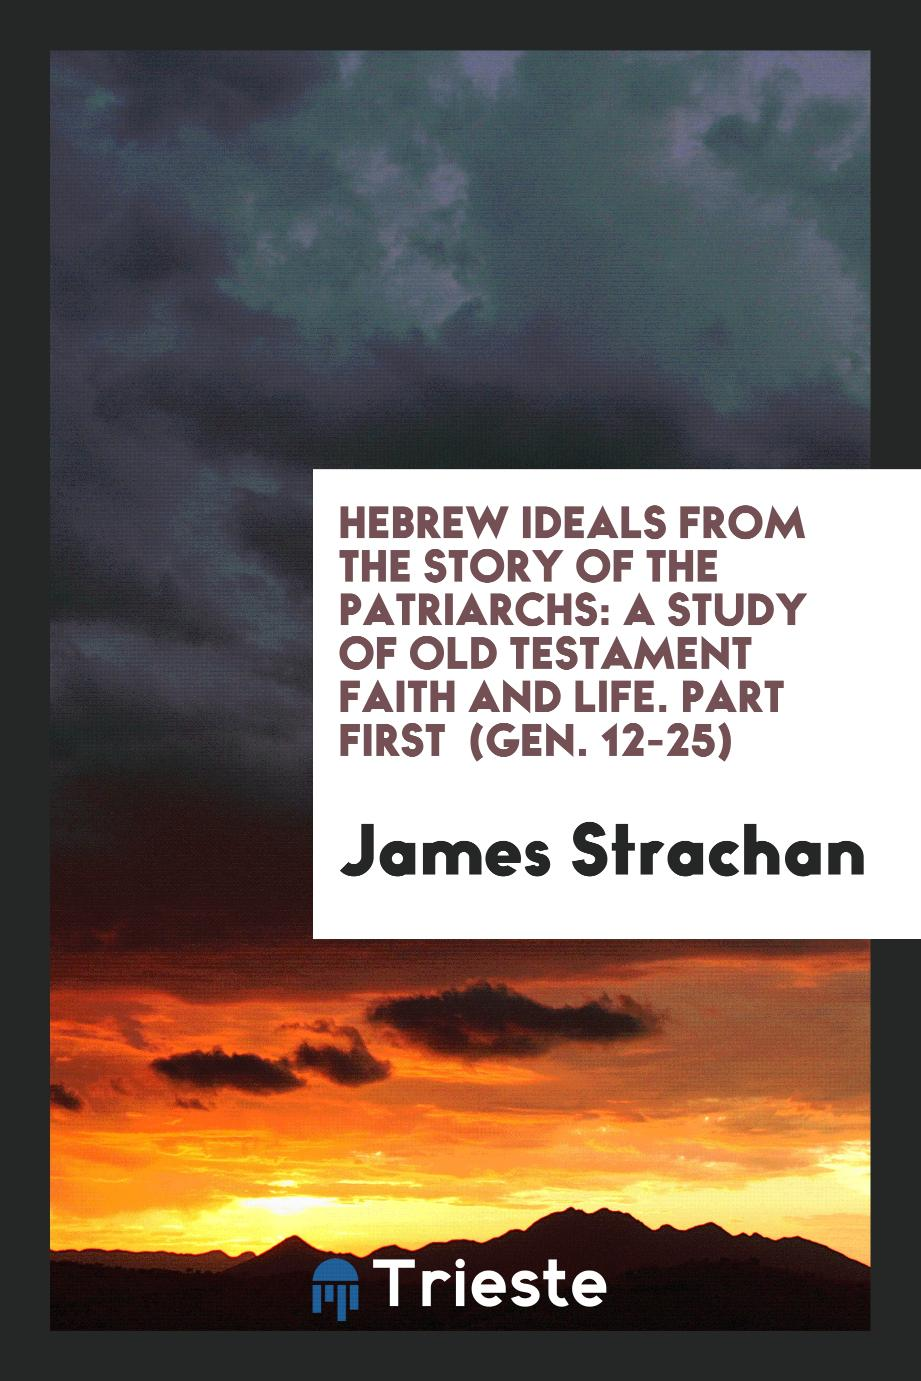 Hebrew Ideals from the Story of the Patriarchs: A Study of Old Testament Faith and Life. Part First (Gen. 12-25)